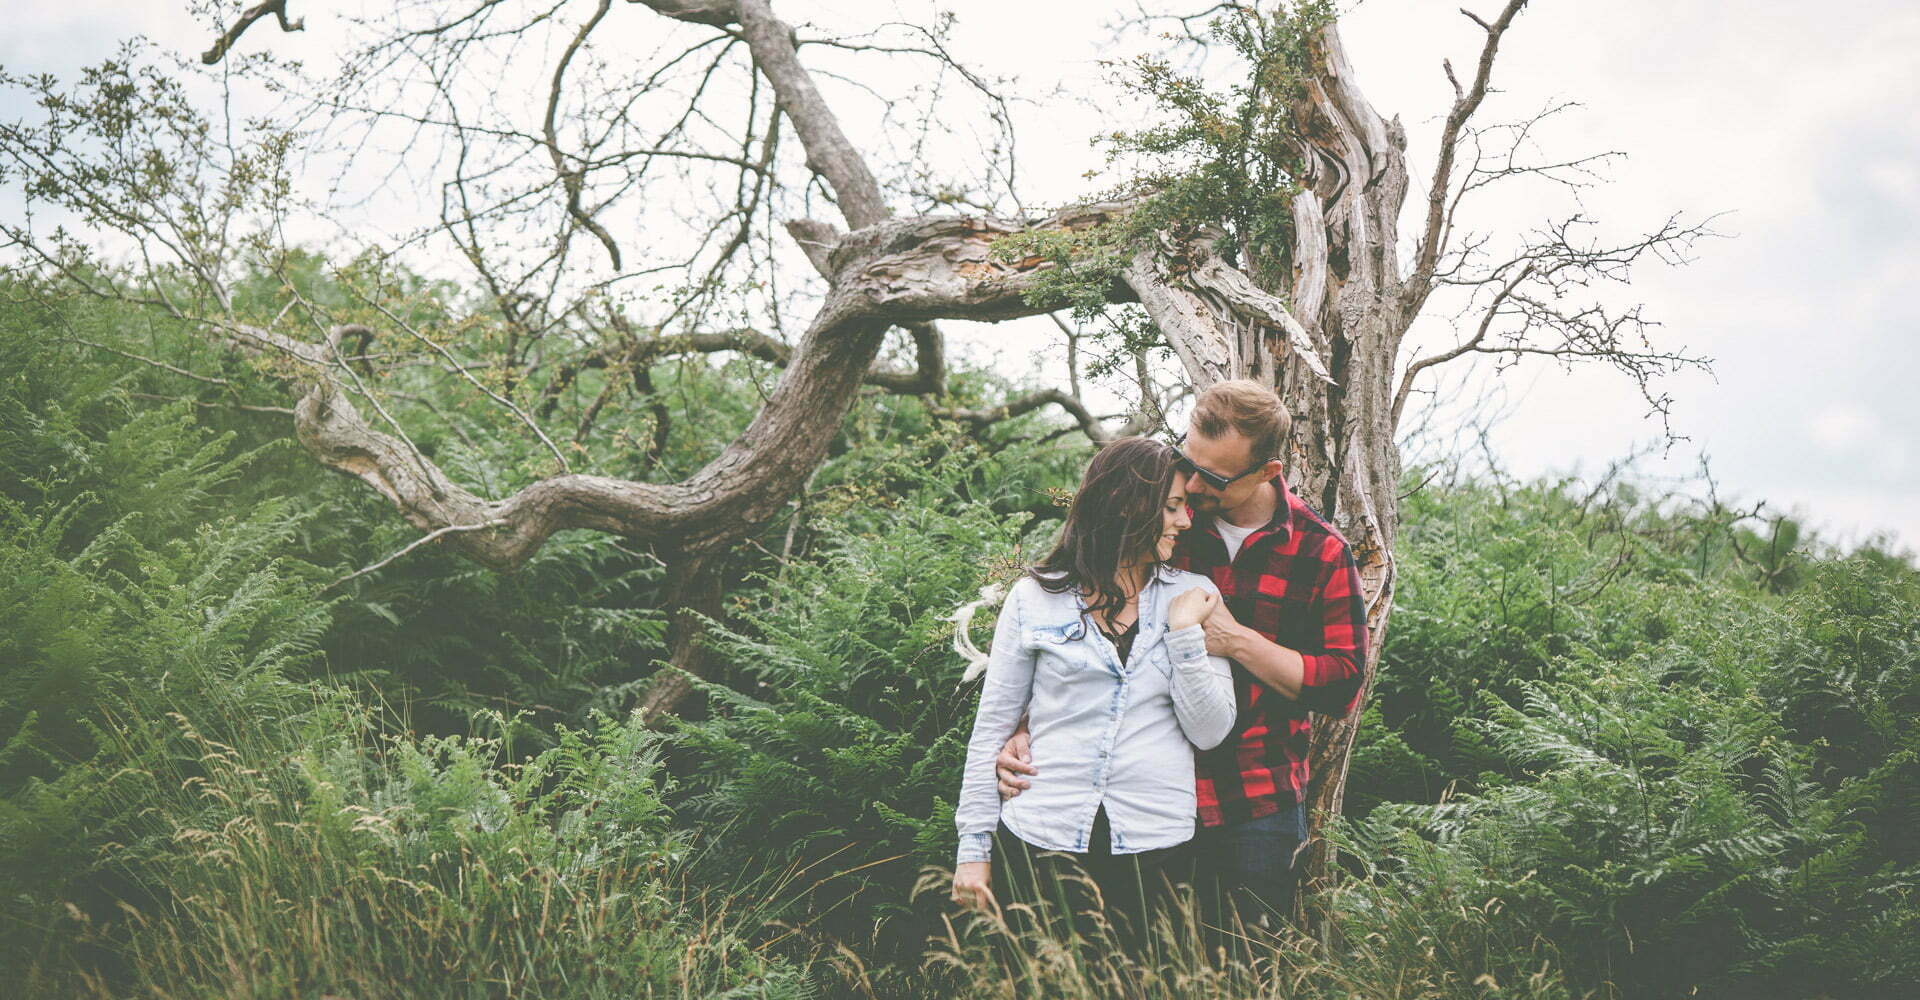 old fallen tree pre wedding engagement Levisham Wedding Photographer Yorkshire Wedding Photography North Yorkshire by Chris and Hazel Wedding Photography Ross Patterson Laurelin Matulis